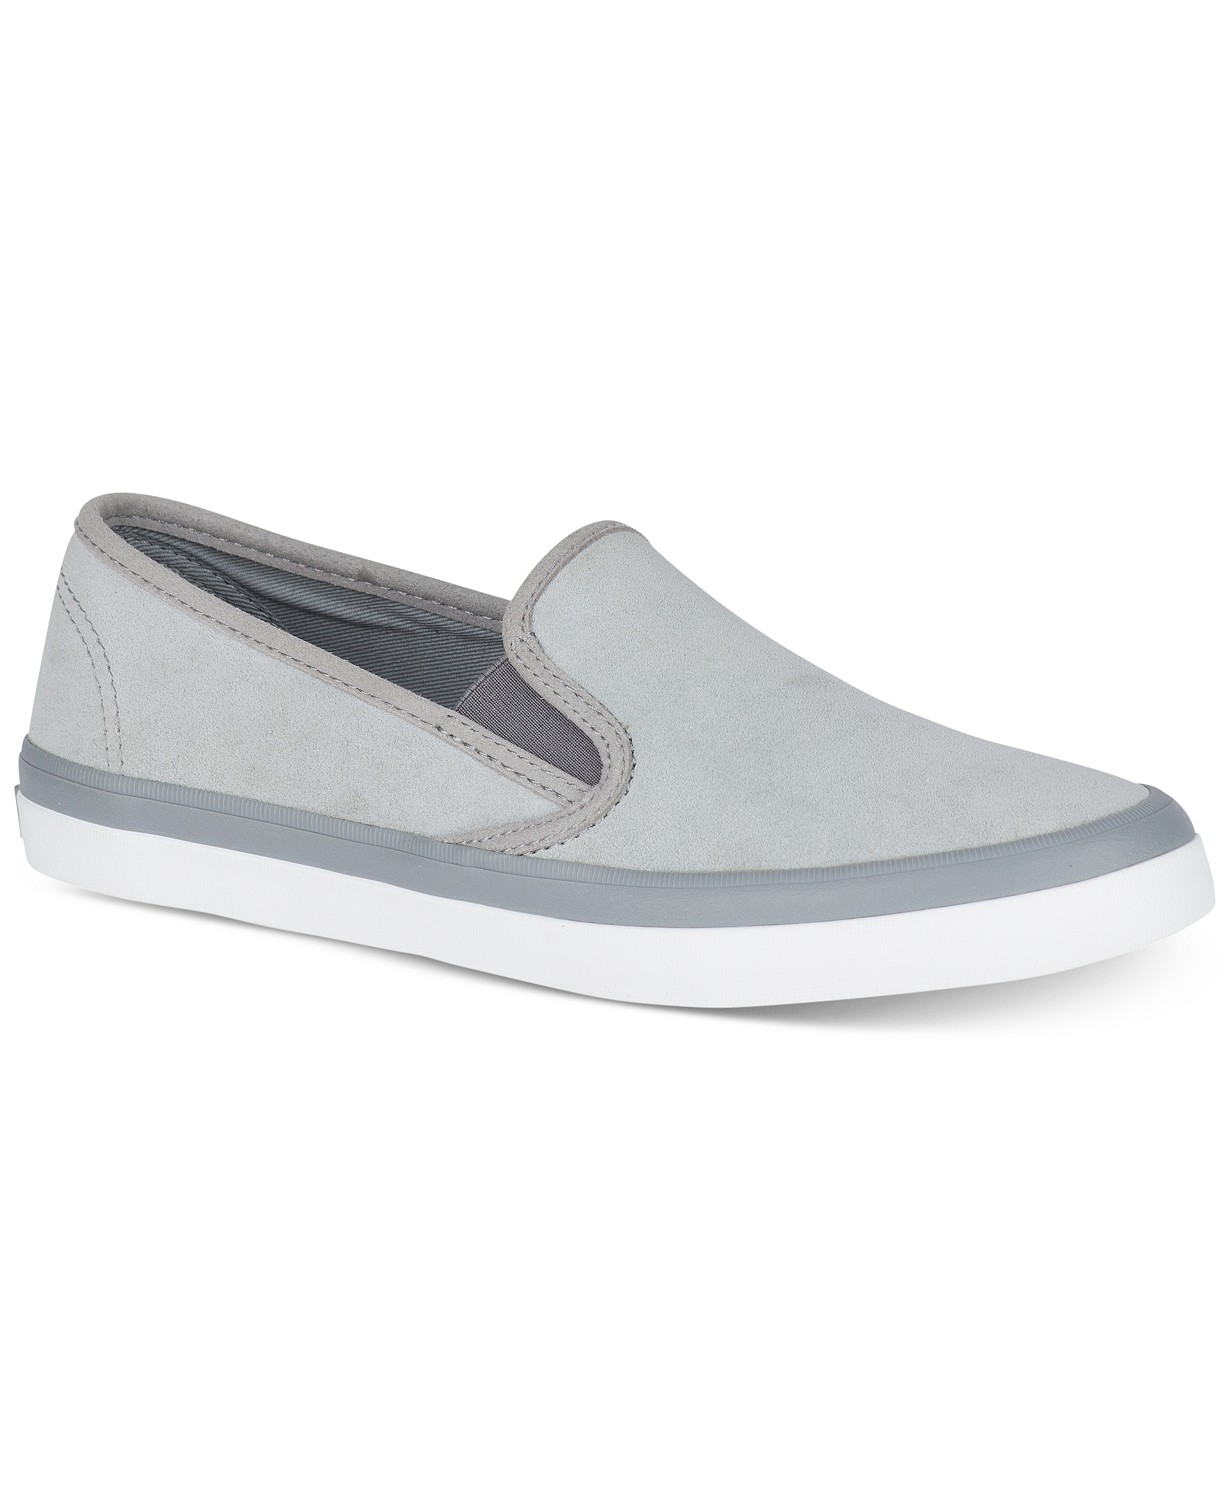 Sperry Women's Seaside Suede Slip-On Fashion Sneakers